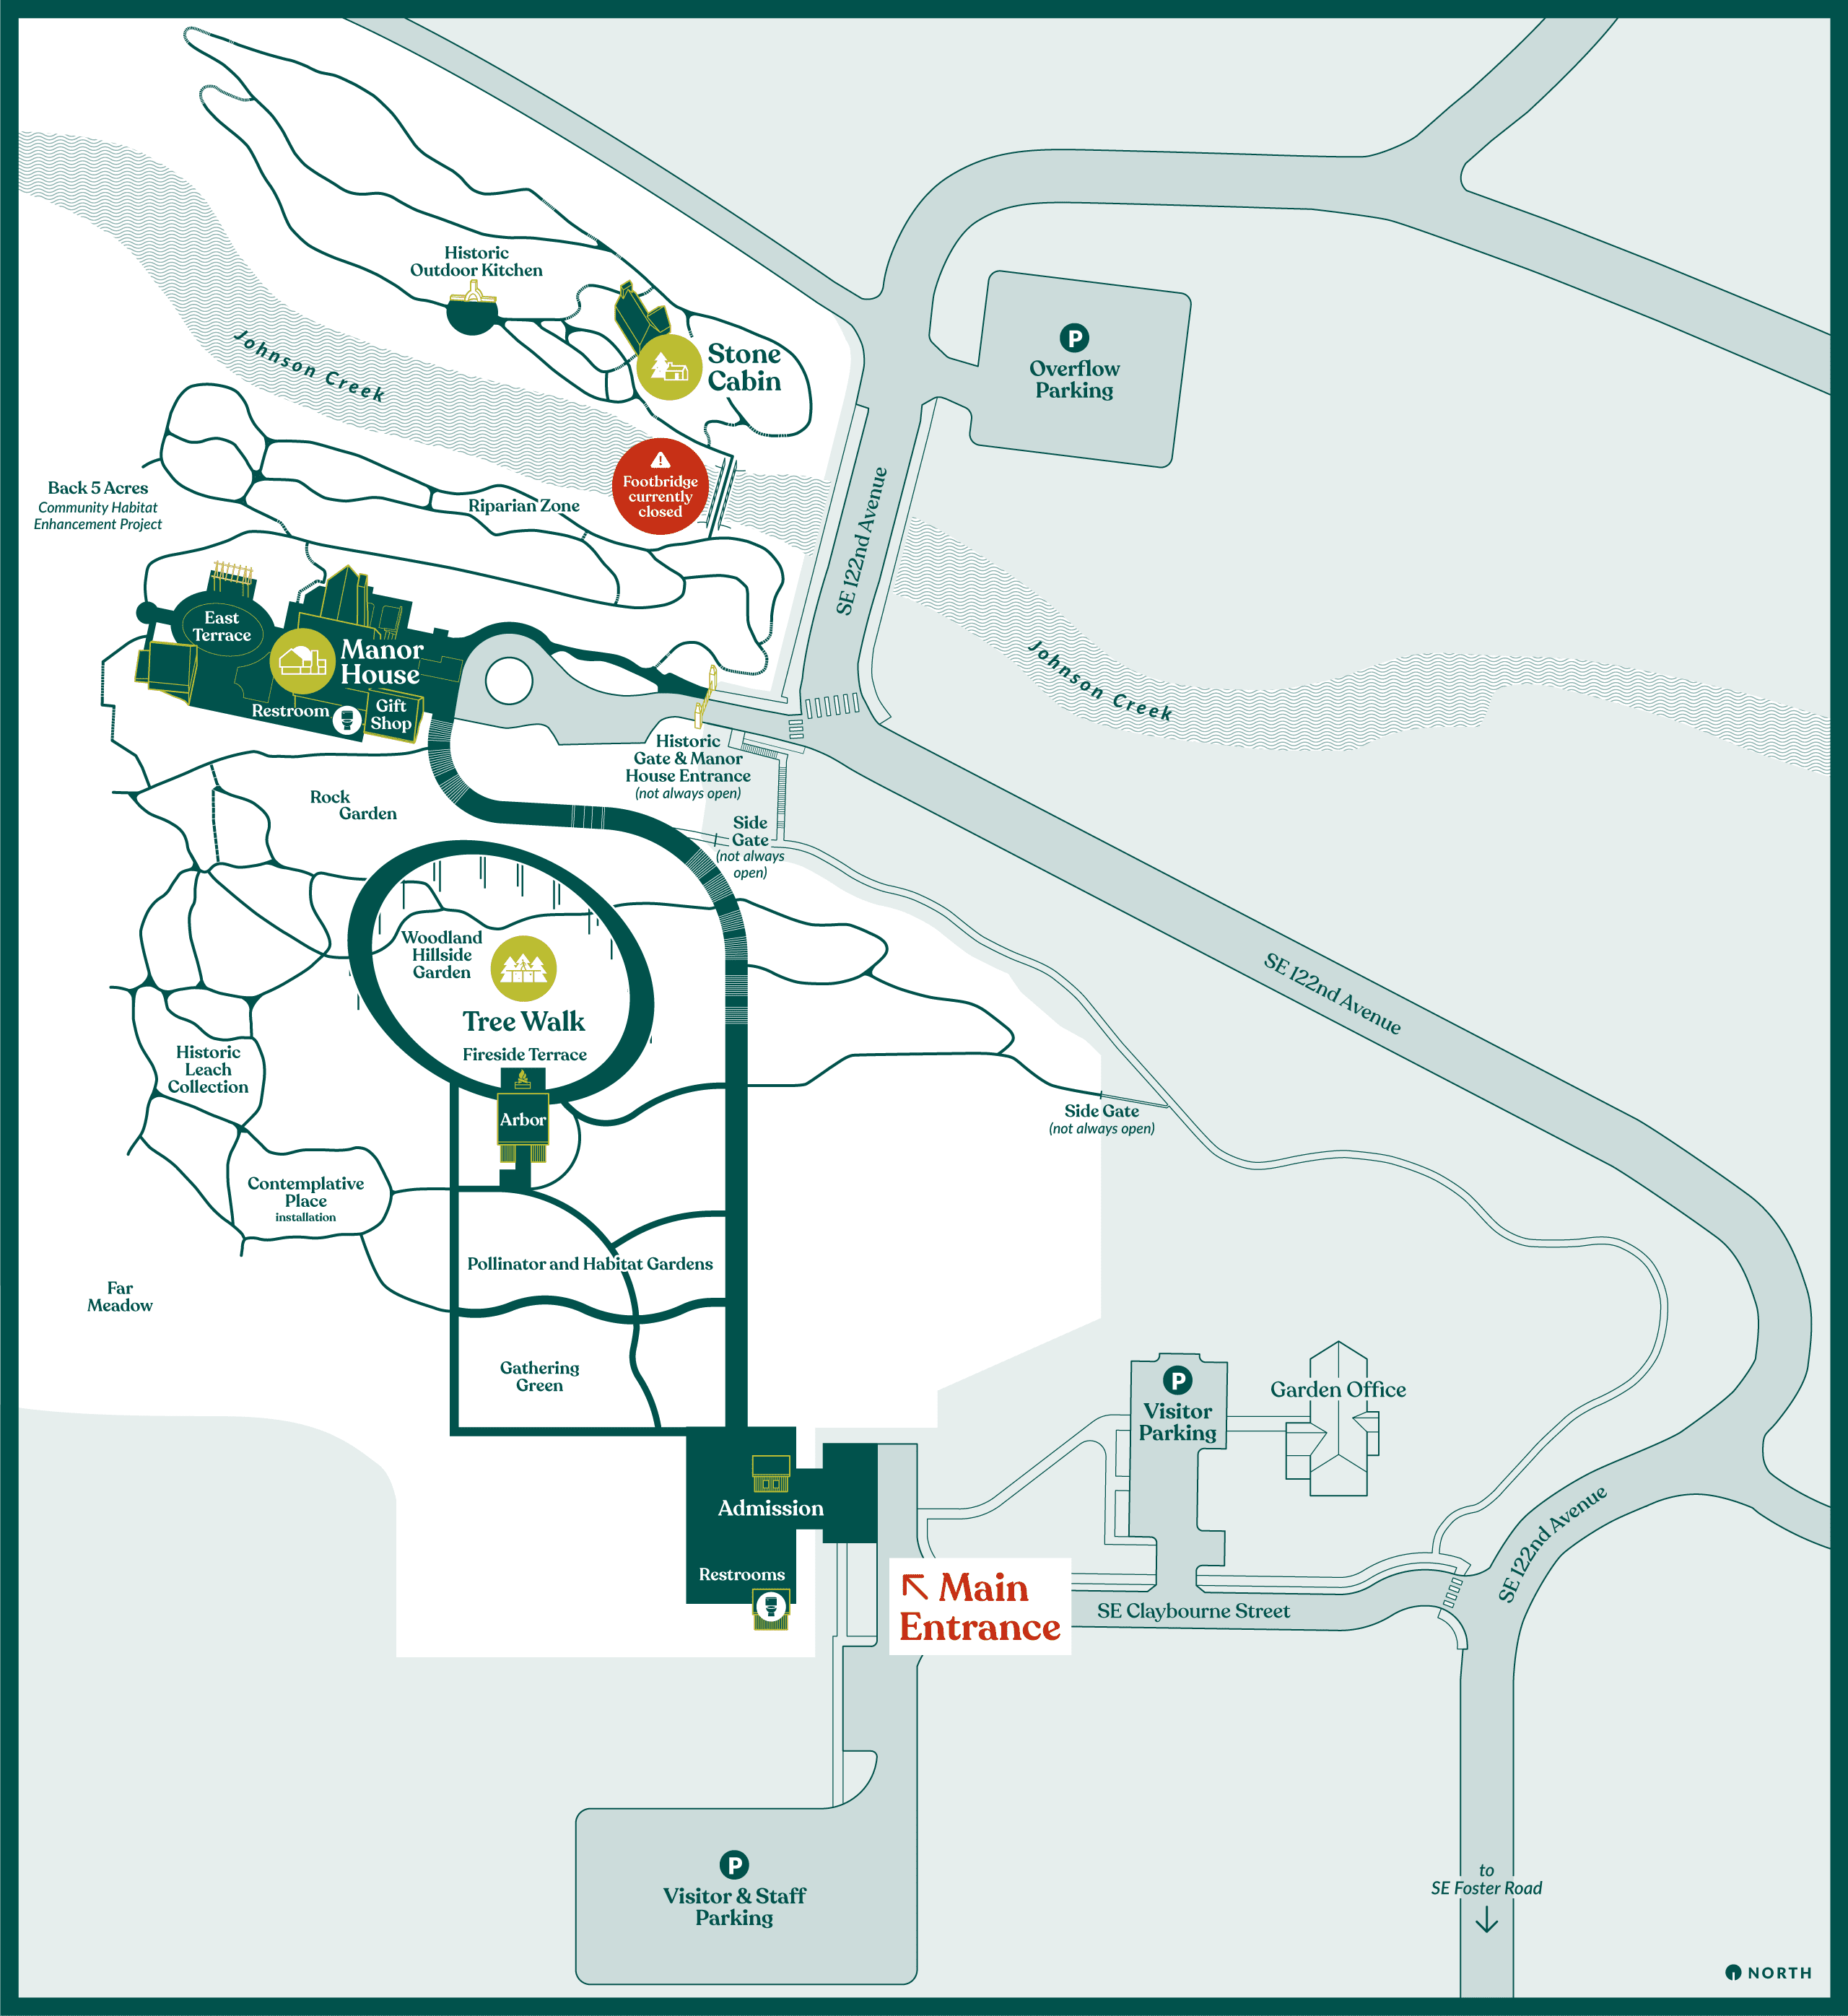 A map of the Leach Botanical Gardens and parking areas